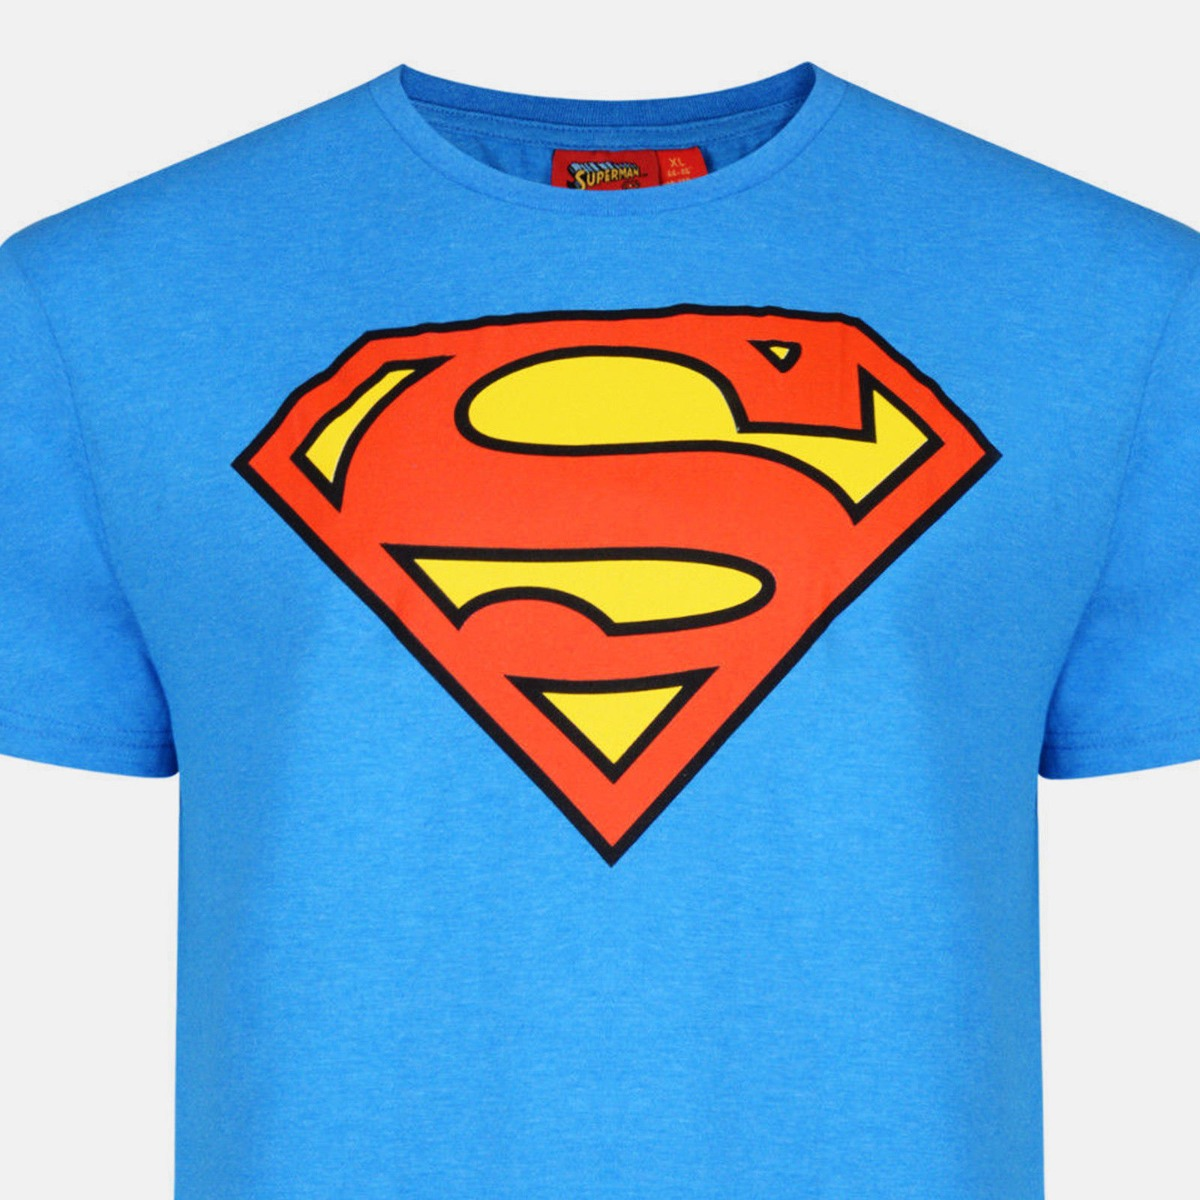 Official-Mens-Superman-T-Shirt-DC-Comic-Tee-Top-Superhero-Logo-Slim-Fit-XS-2XL miniatura 8